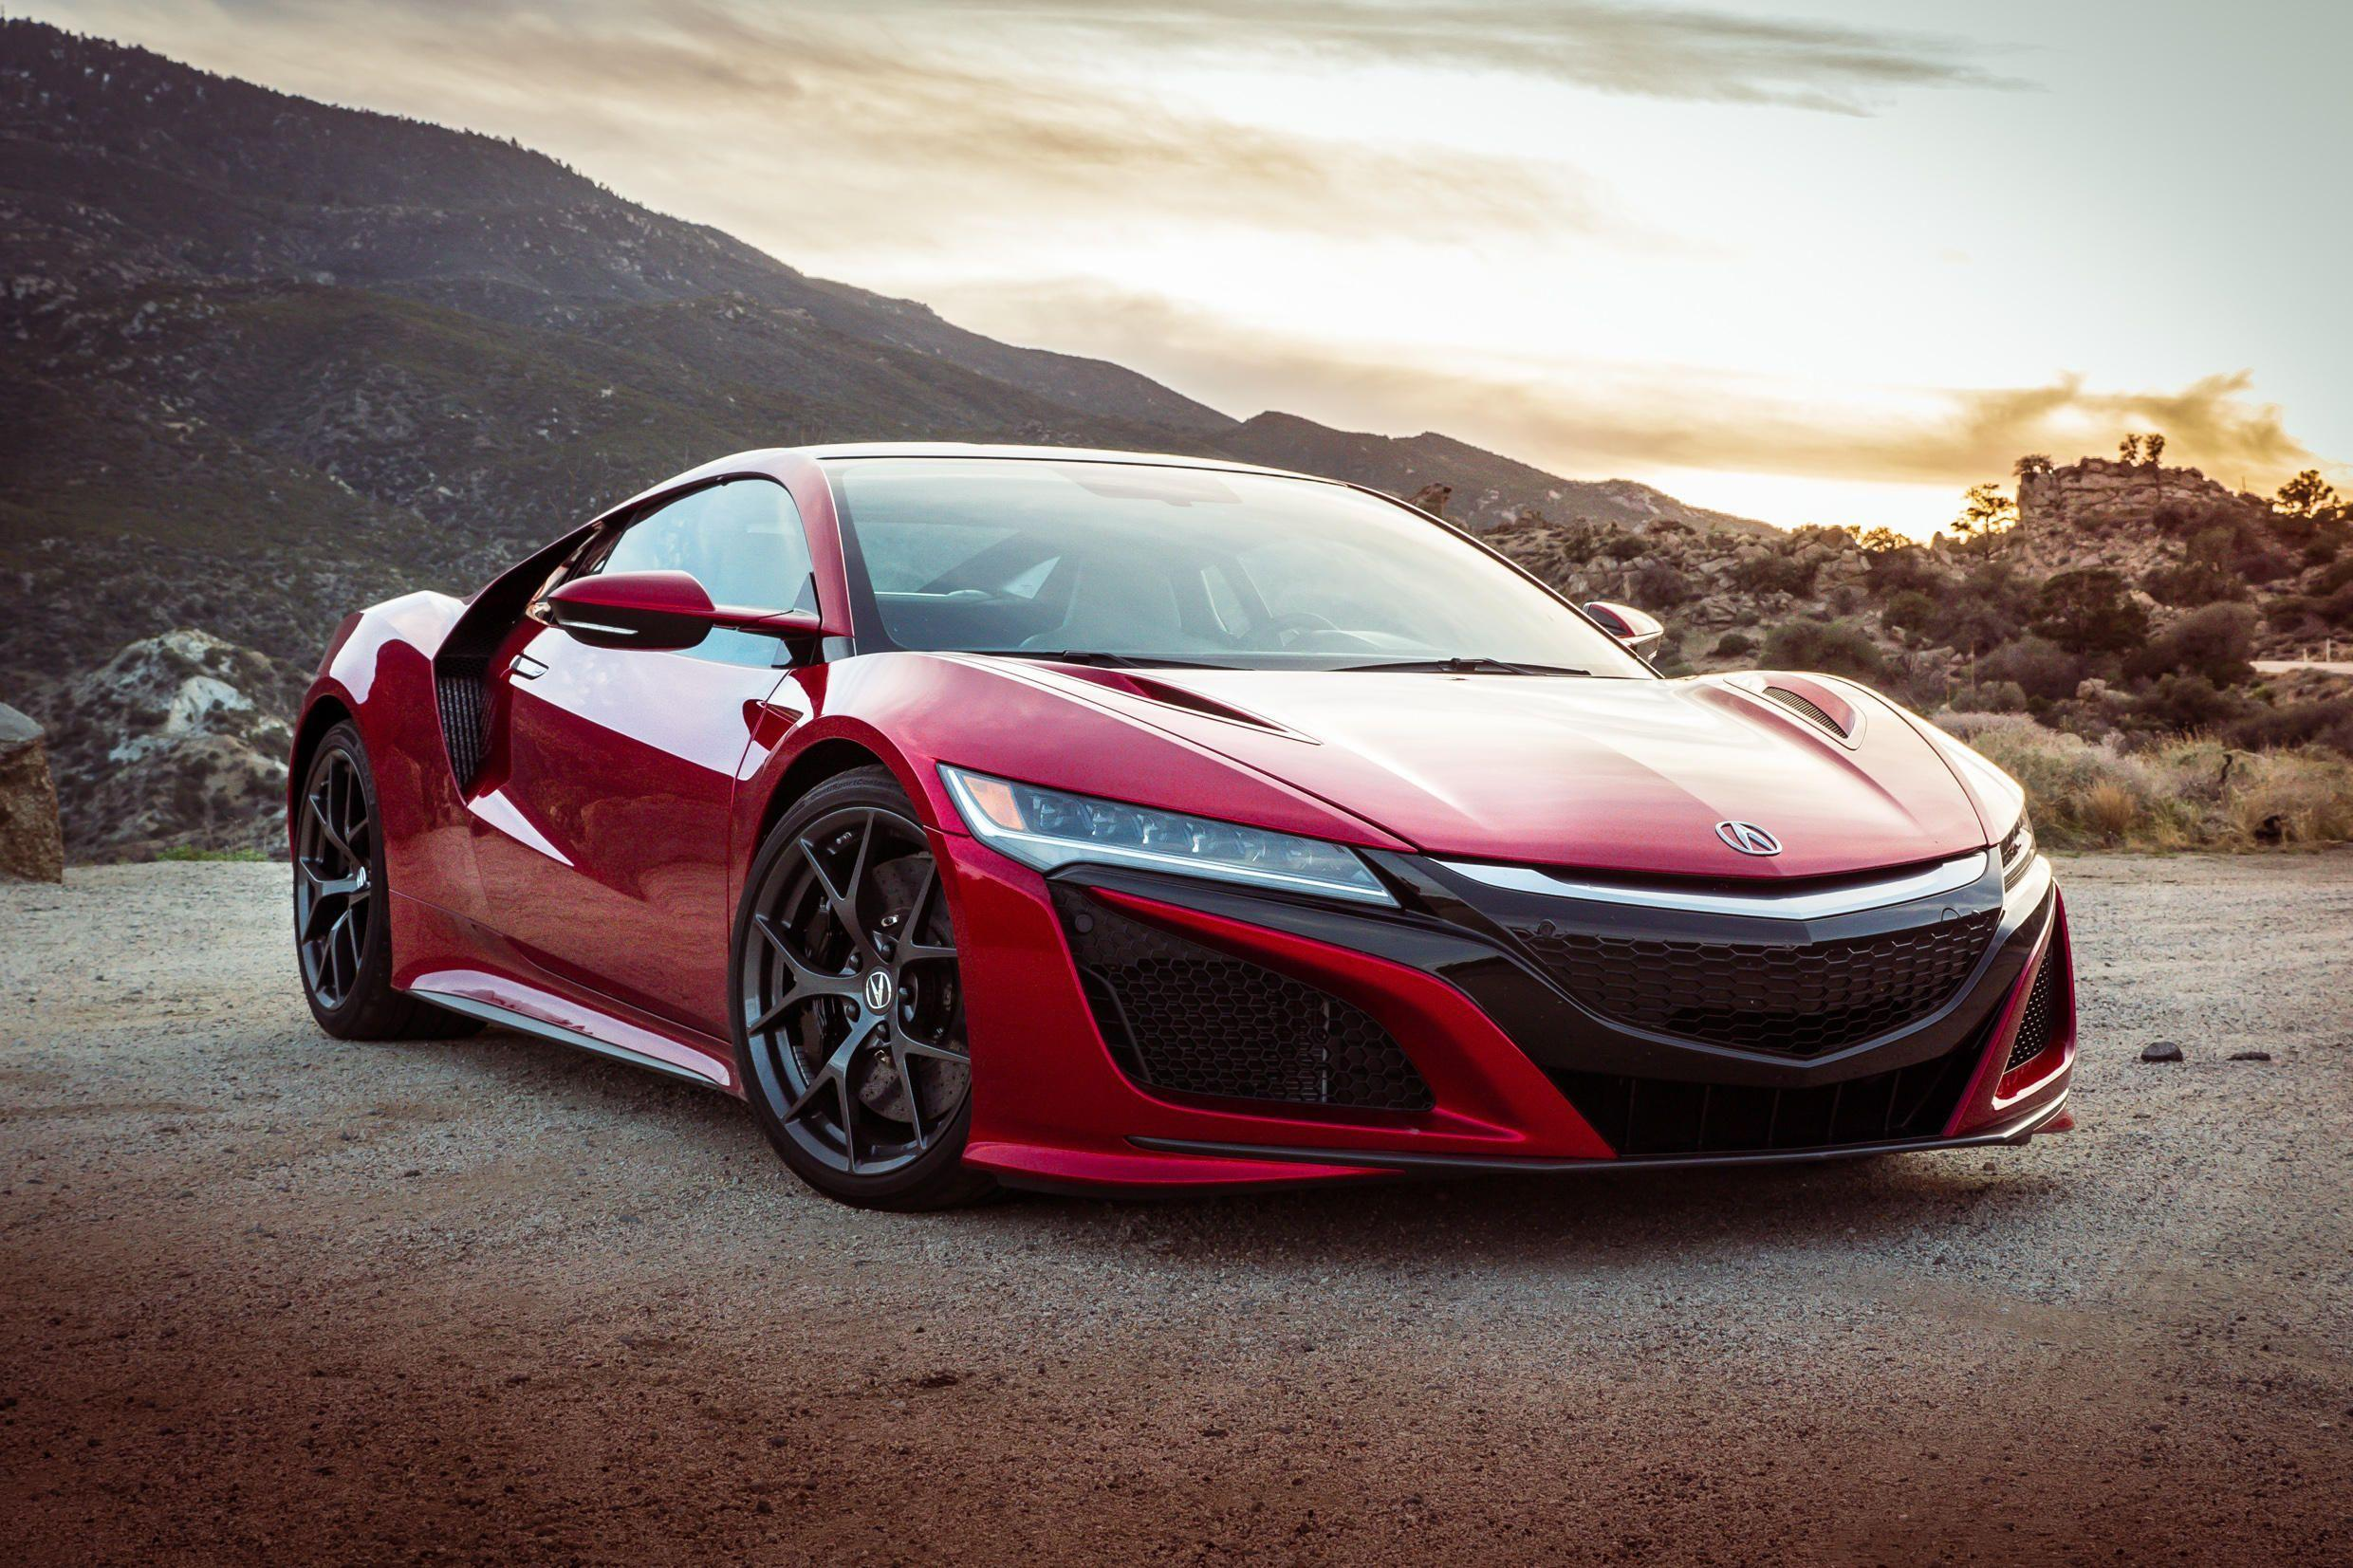 2017 Acura NSX | Cars HD 4k Wallpapers